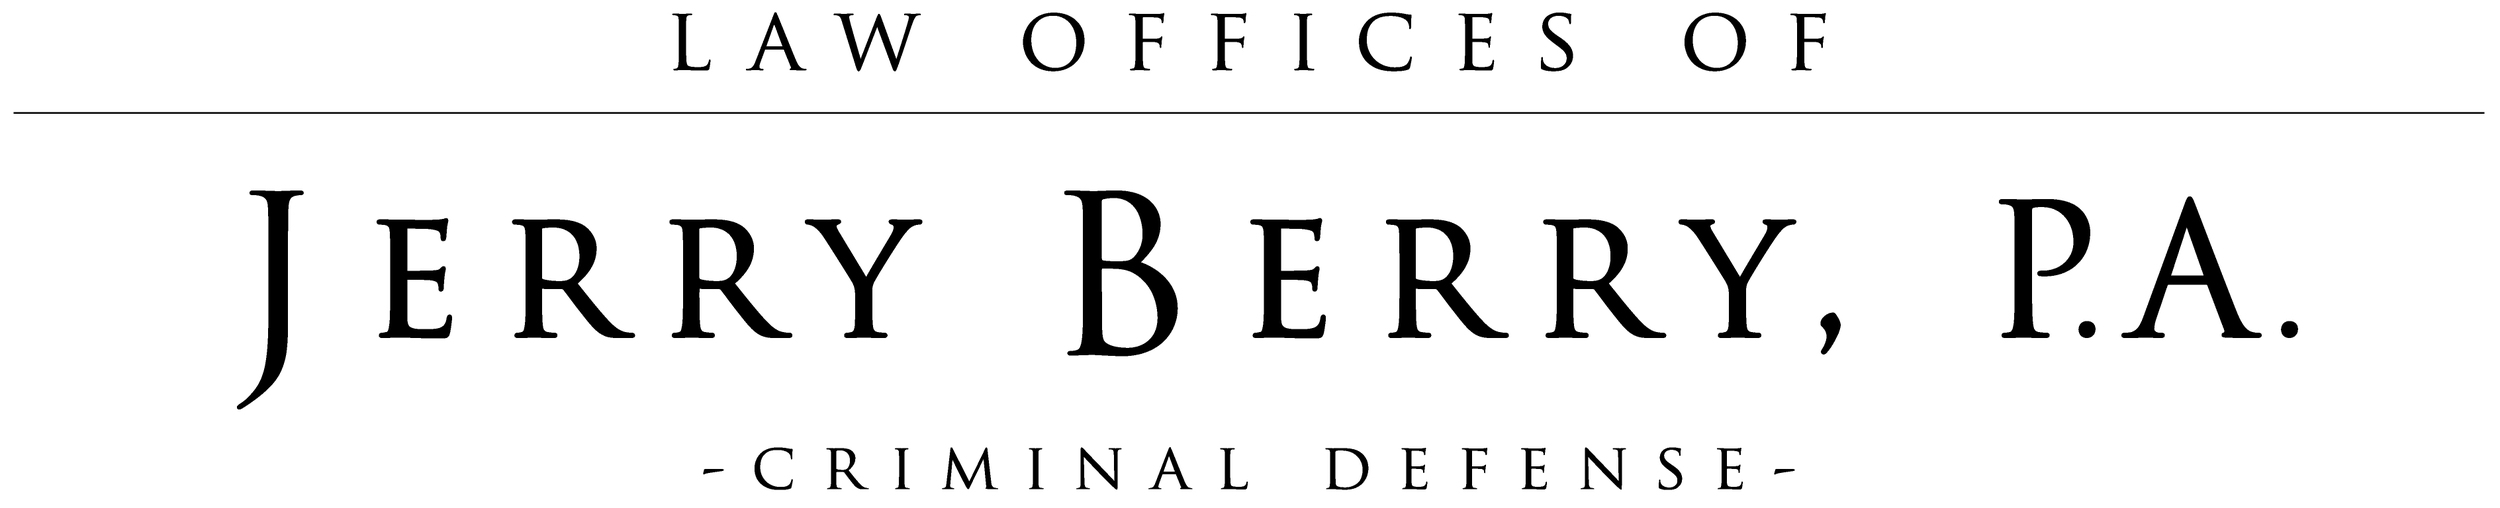 Law Offices of Jerry Berry